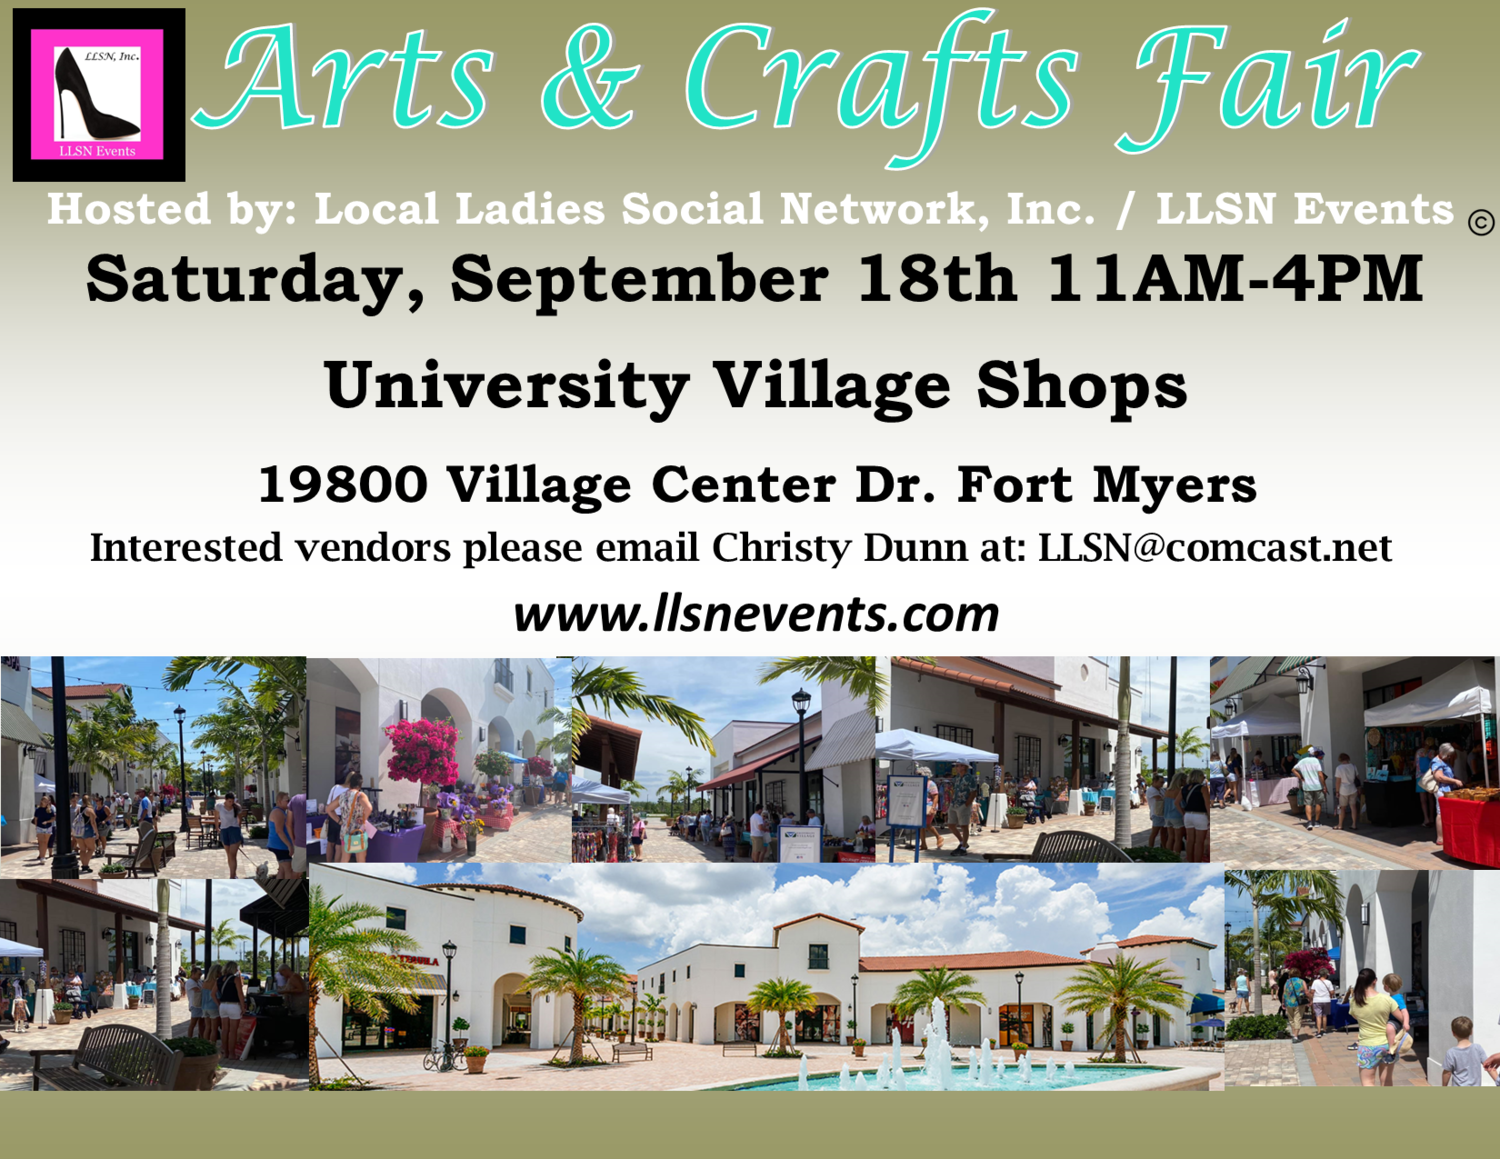 Arts & Crafts Fair- Fort Myers, Saturday September 18th 11AM-4PM